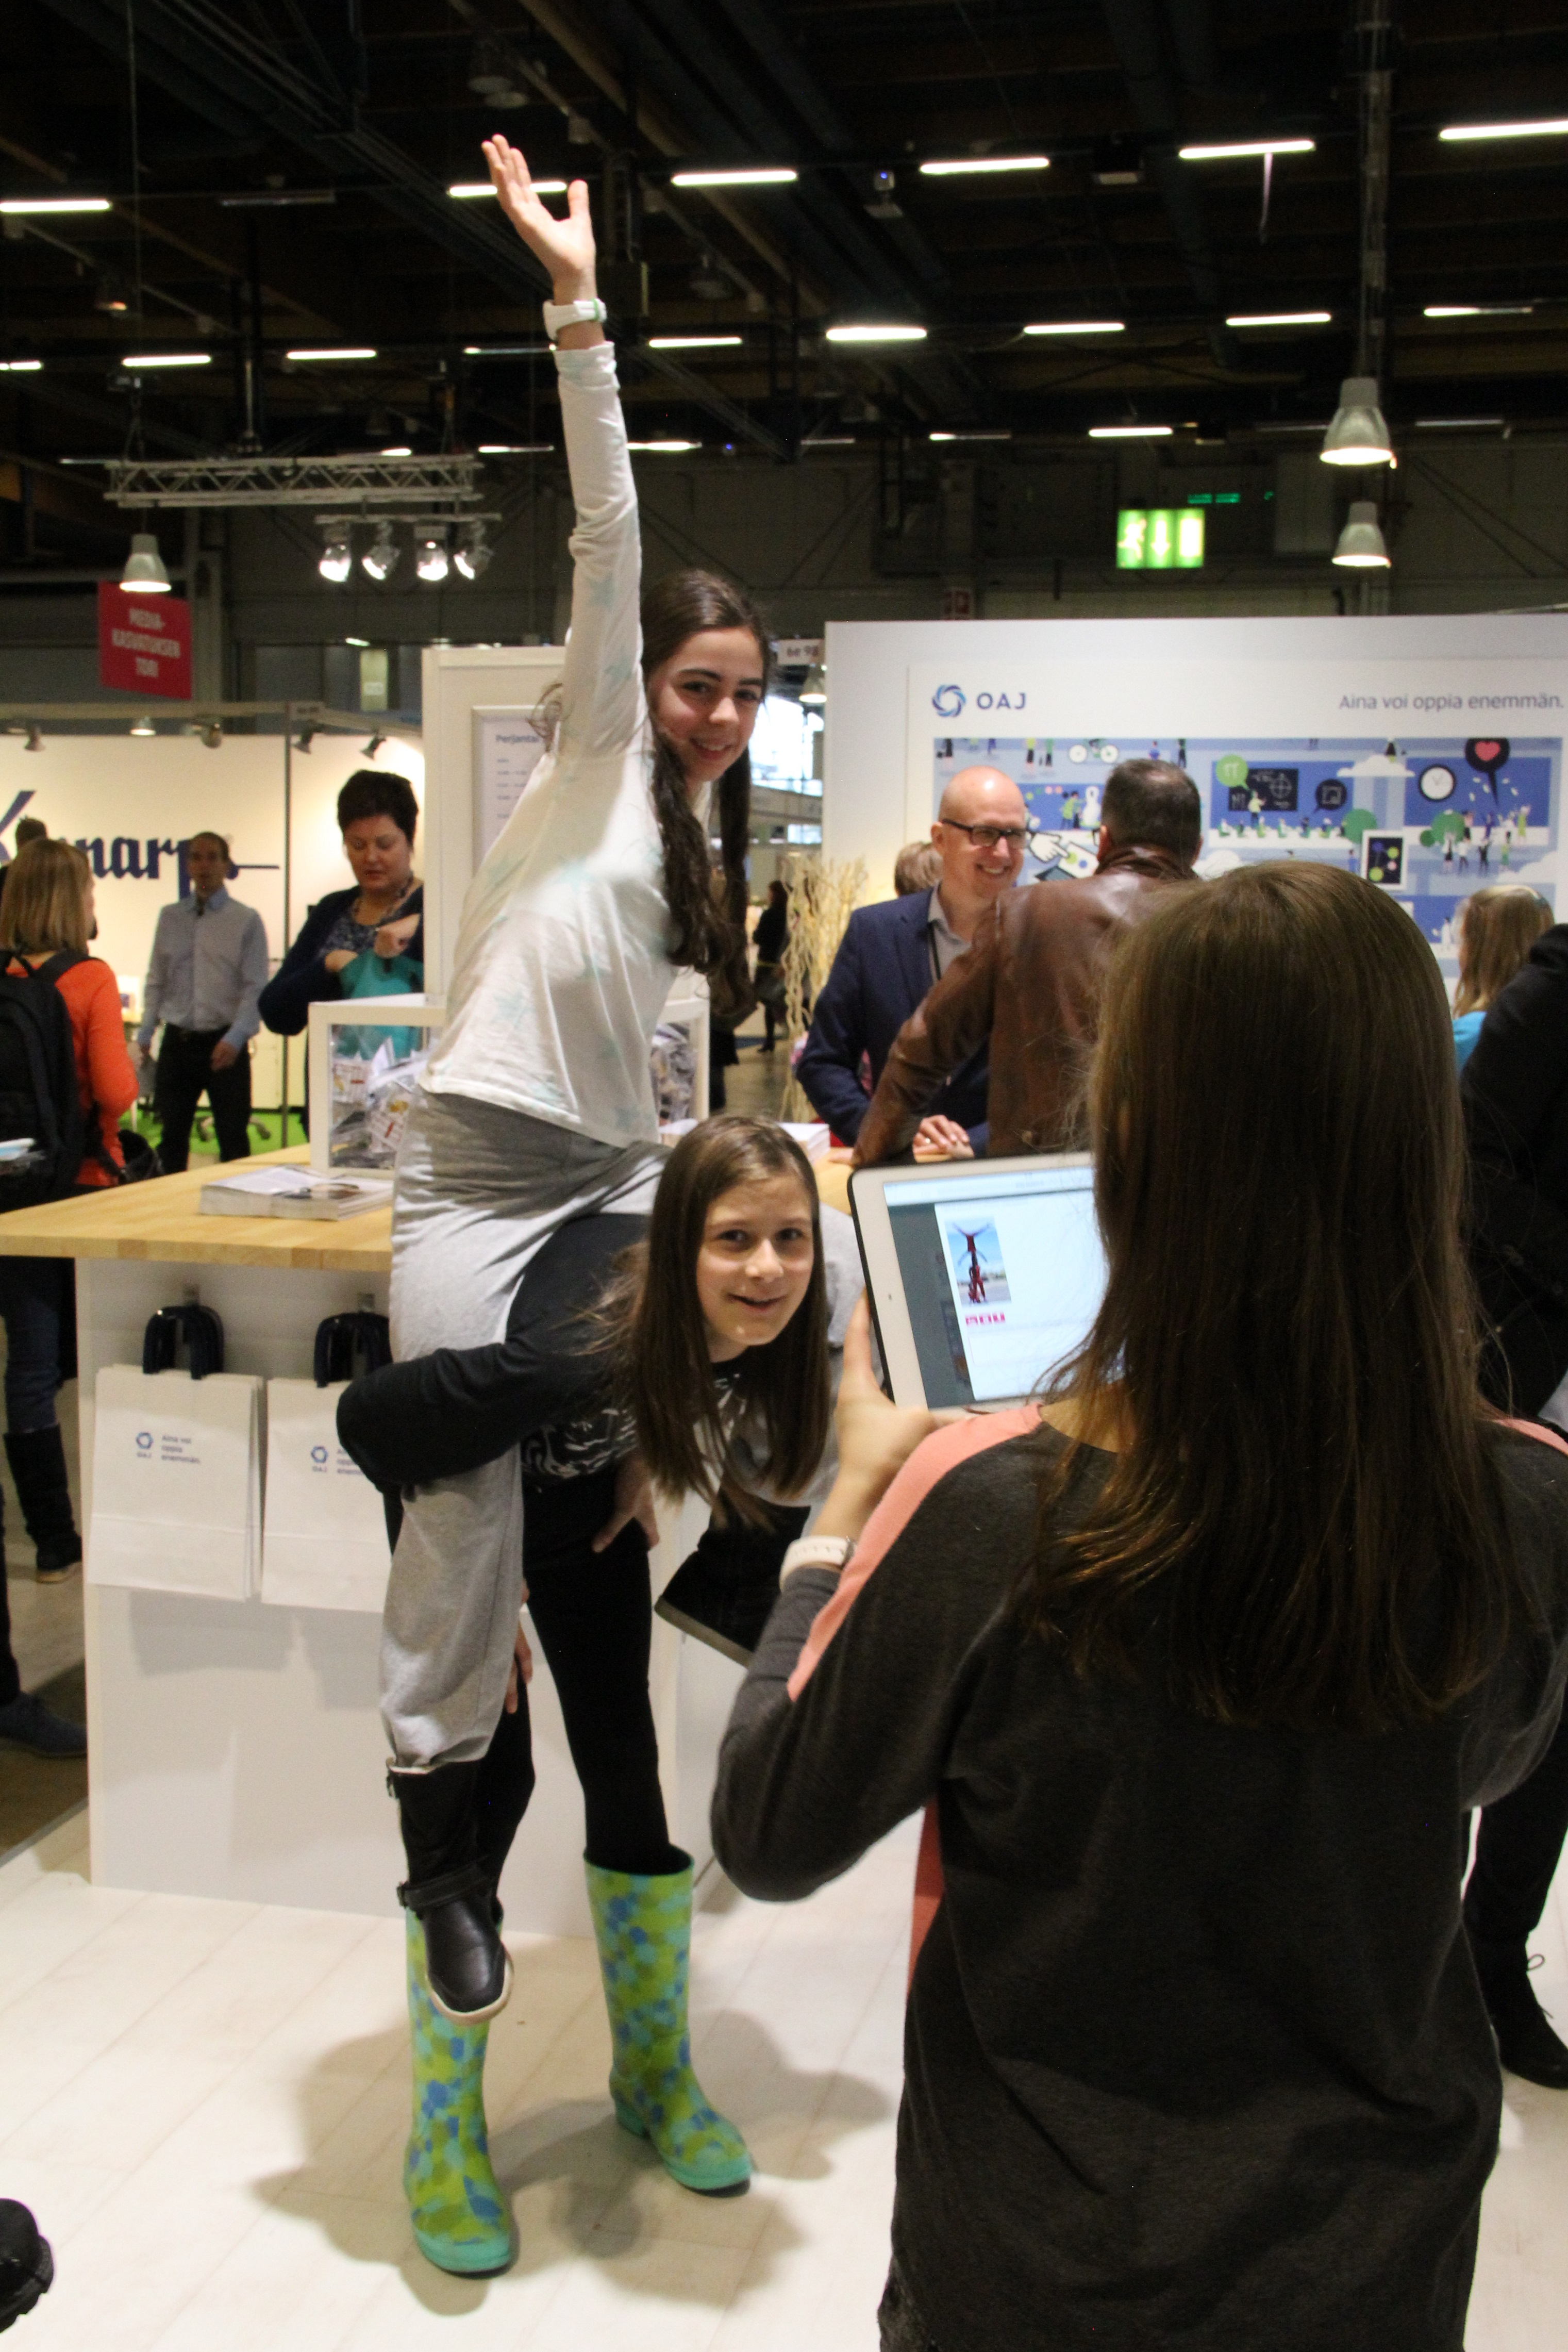 Gamification and mobile apps pushed in schools to encourage innovation